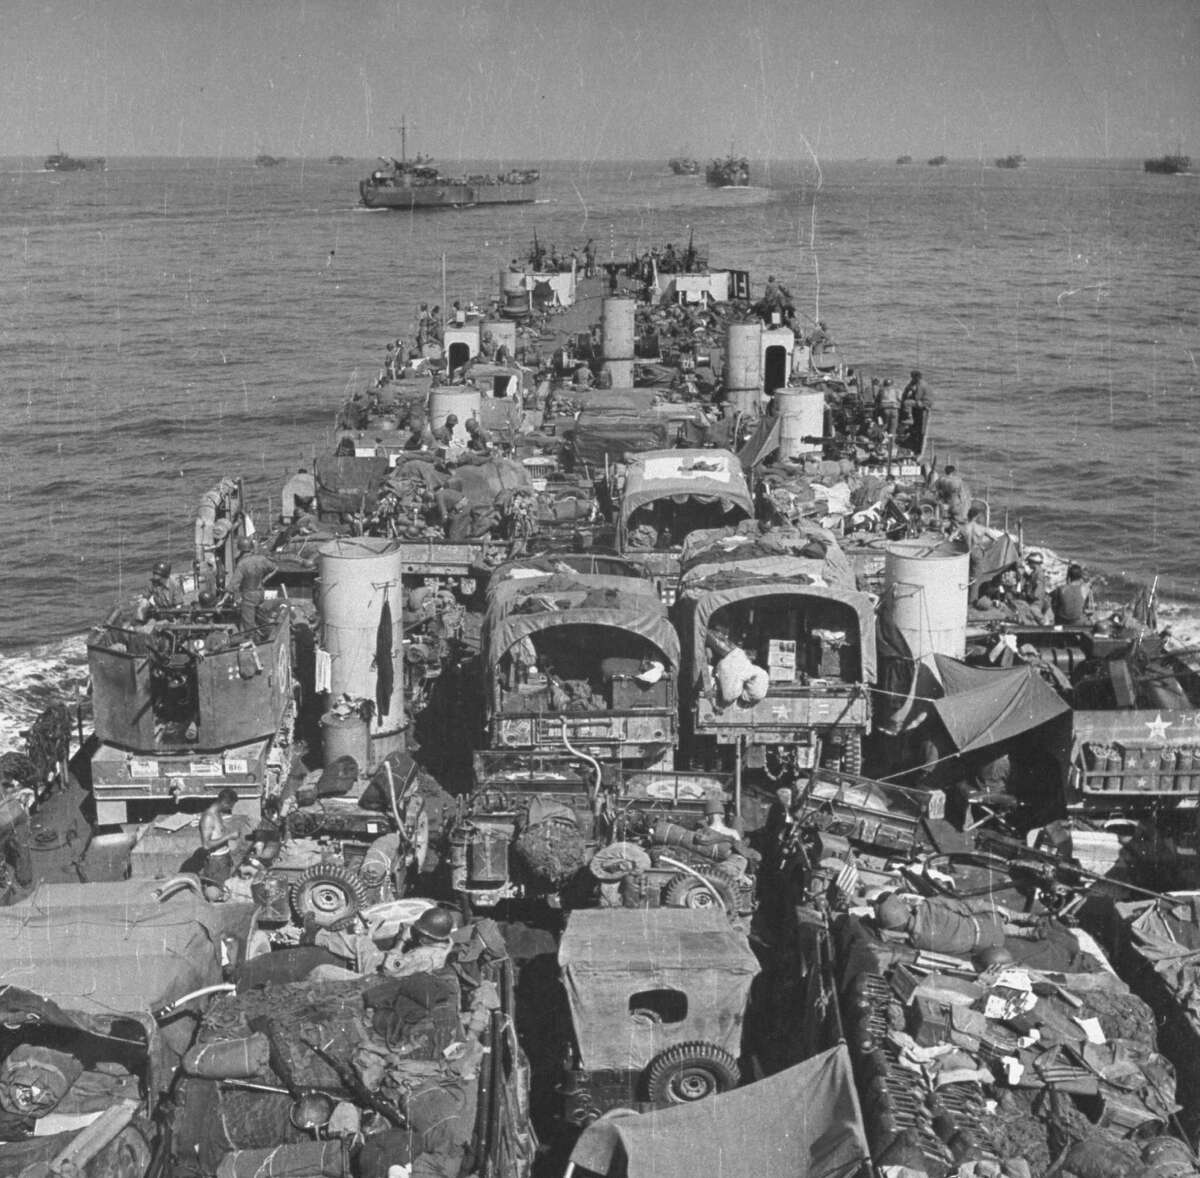 Convoy of American landing craft laden with men and supplies for the invasion of Italy at Salerno, September 1943.